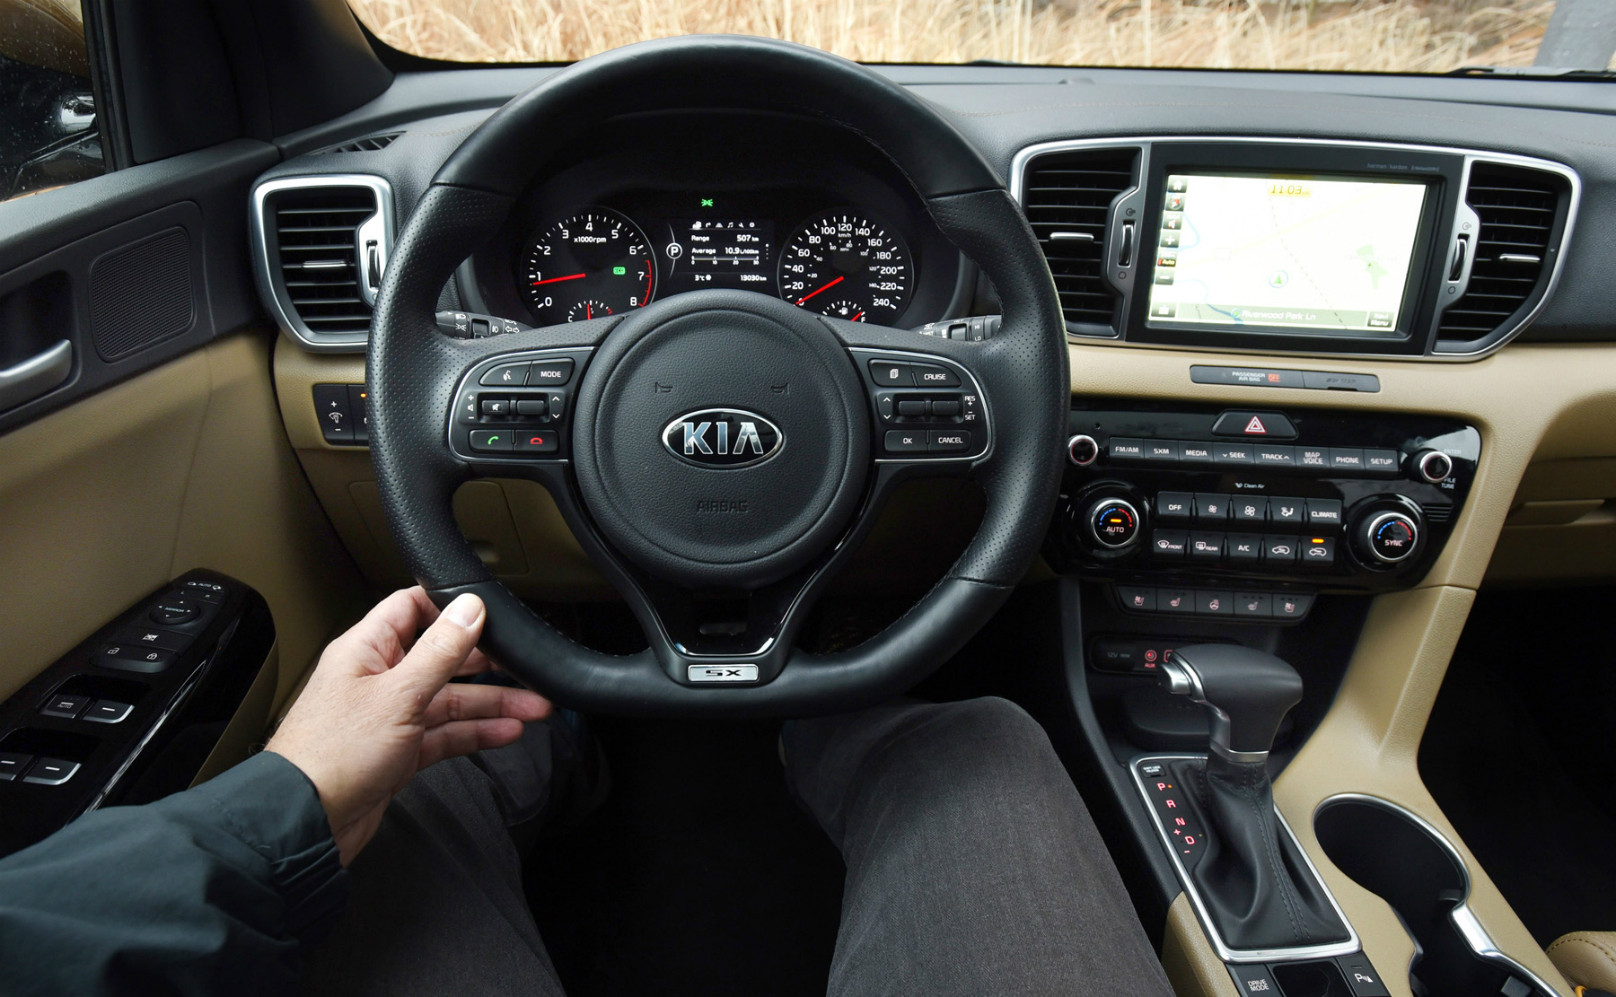 Keeping the sport in Kia's Sportage - WHEELS.ca